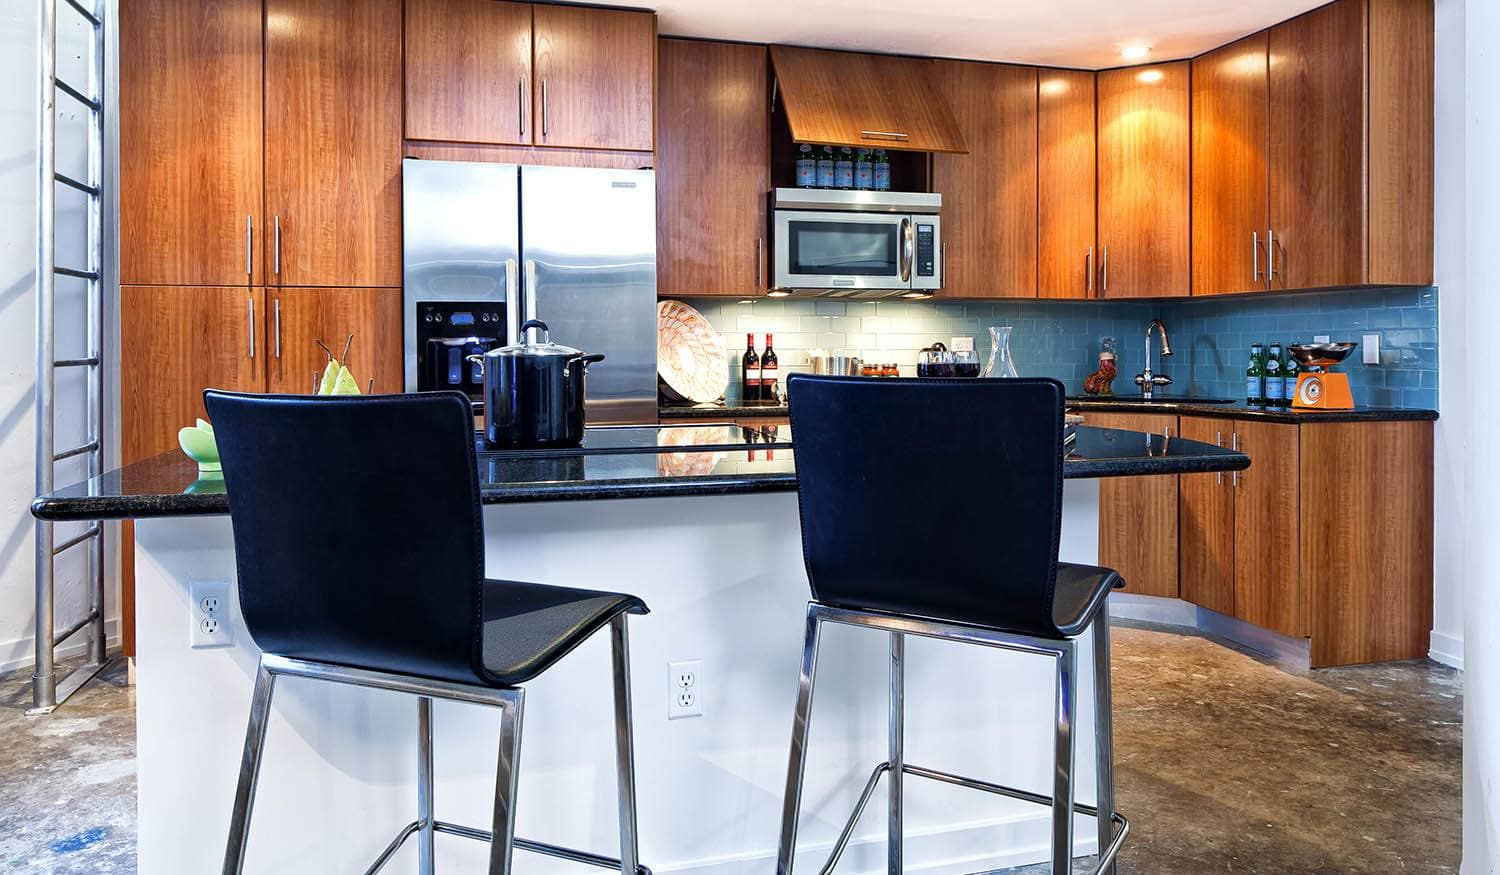 Open kitchen with concrete flooring at The Exchange Lofts in Fort Lauderdale, Florida